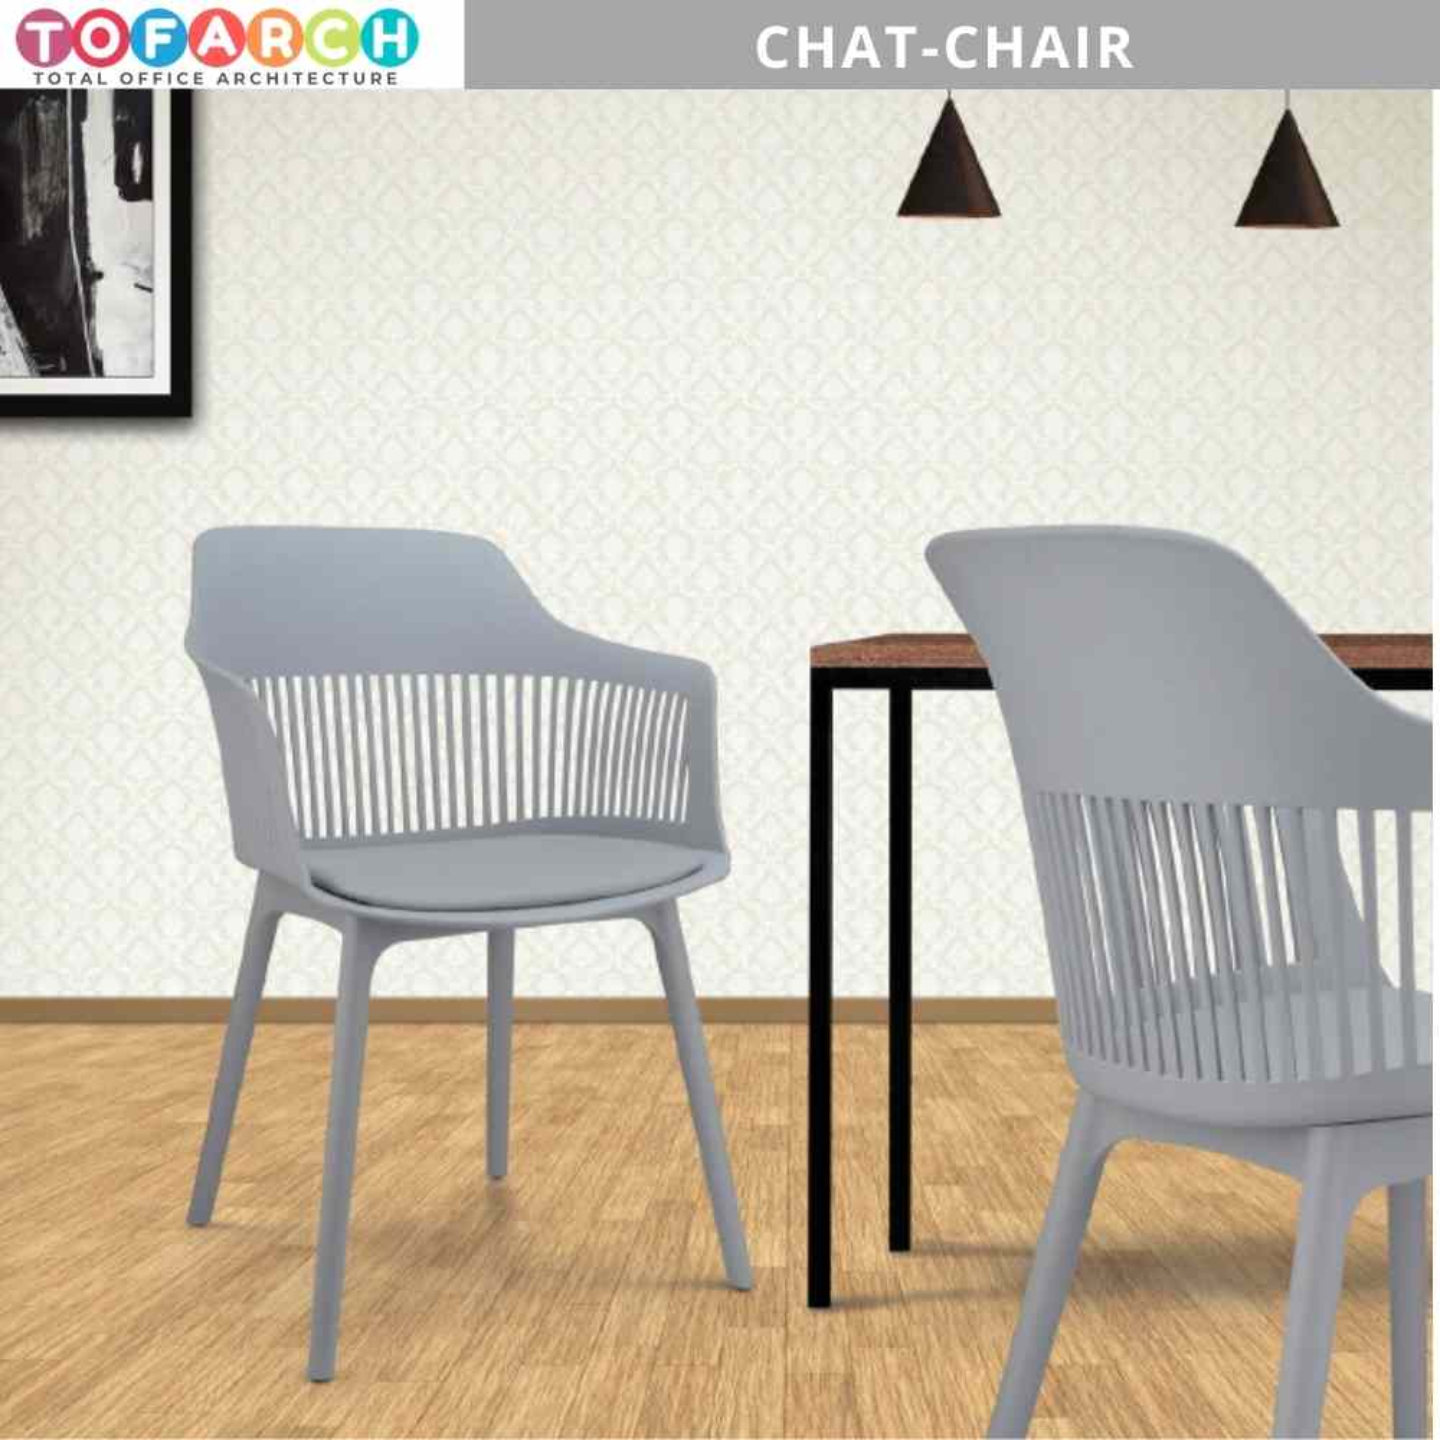 Dining Cum Cafe Chair Chat Cafeteria Chair